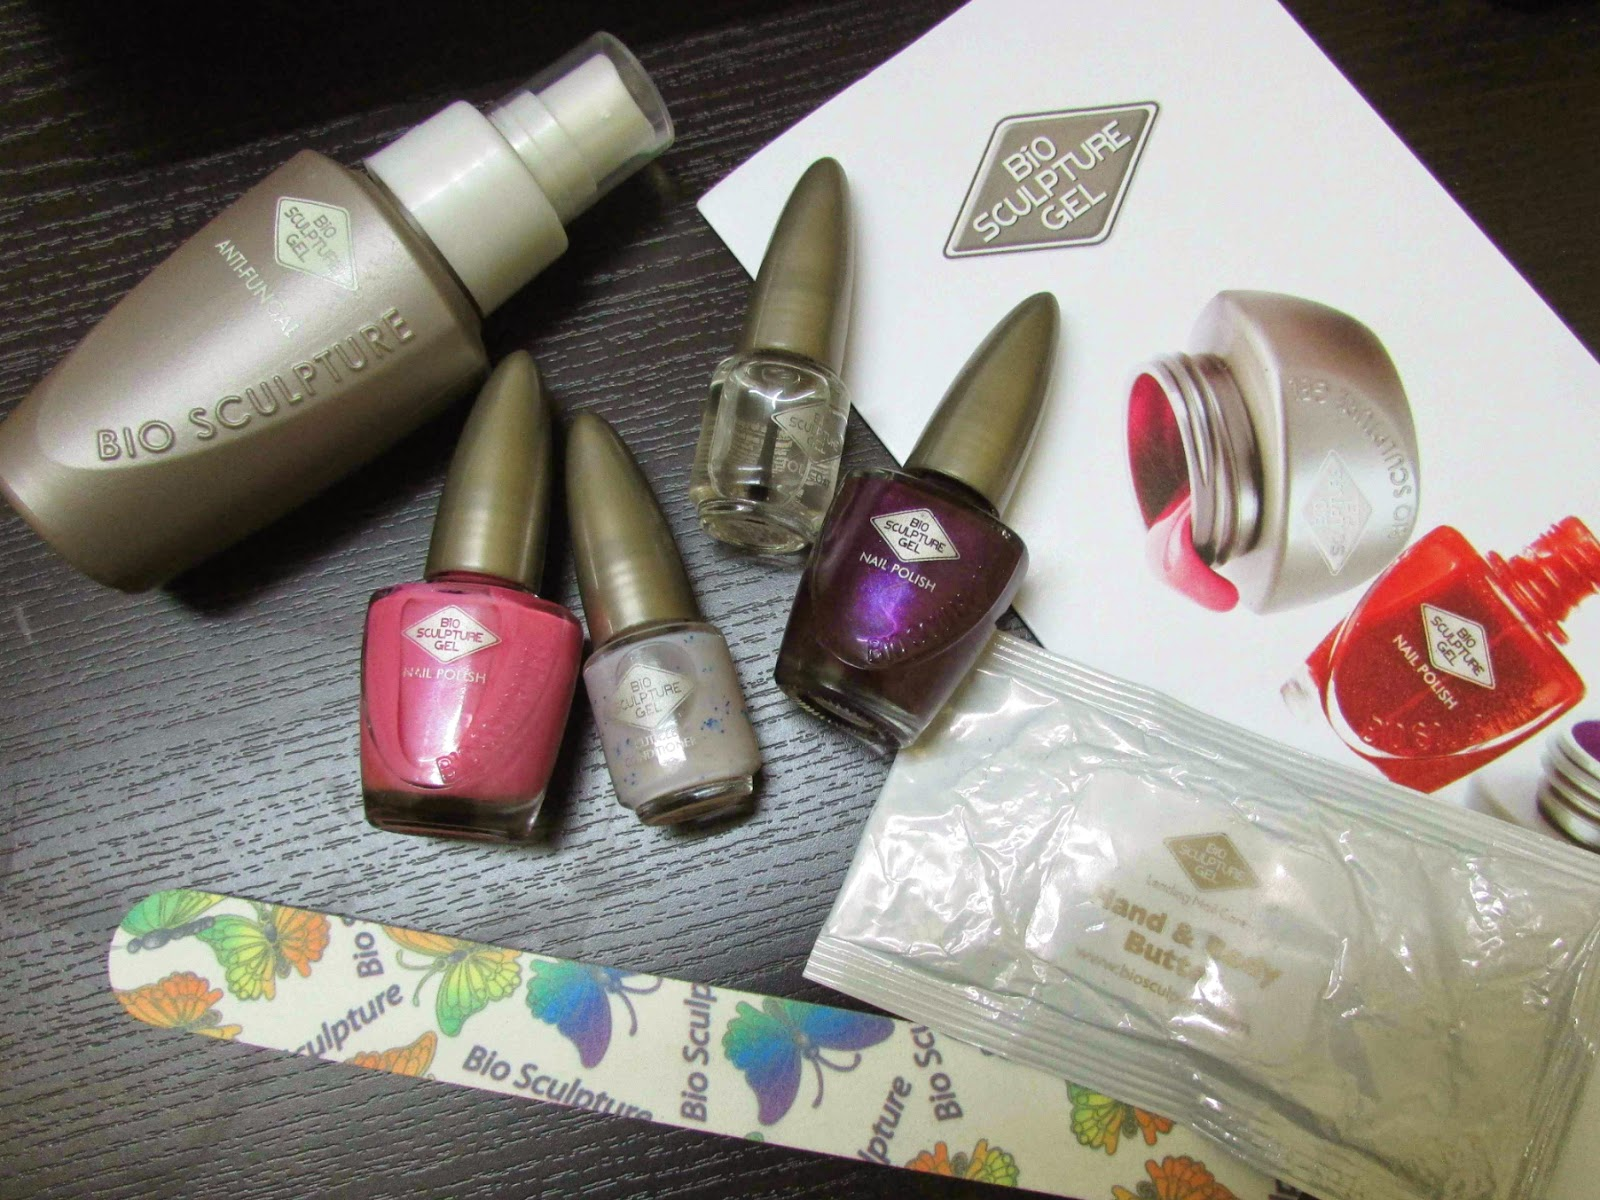 Bio Sculpture, Bio Sculpture india, Bio Sculpture nail art, Bio Sculpture nails, forays, gel nails, manicures, padicures, The Imperial Salon,